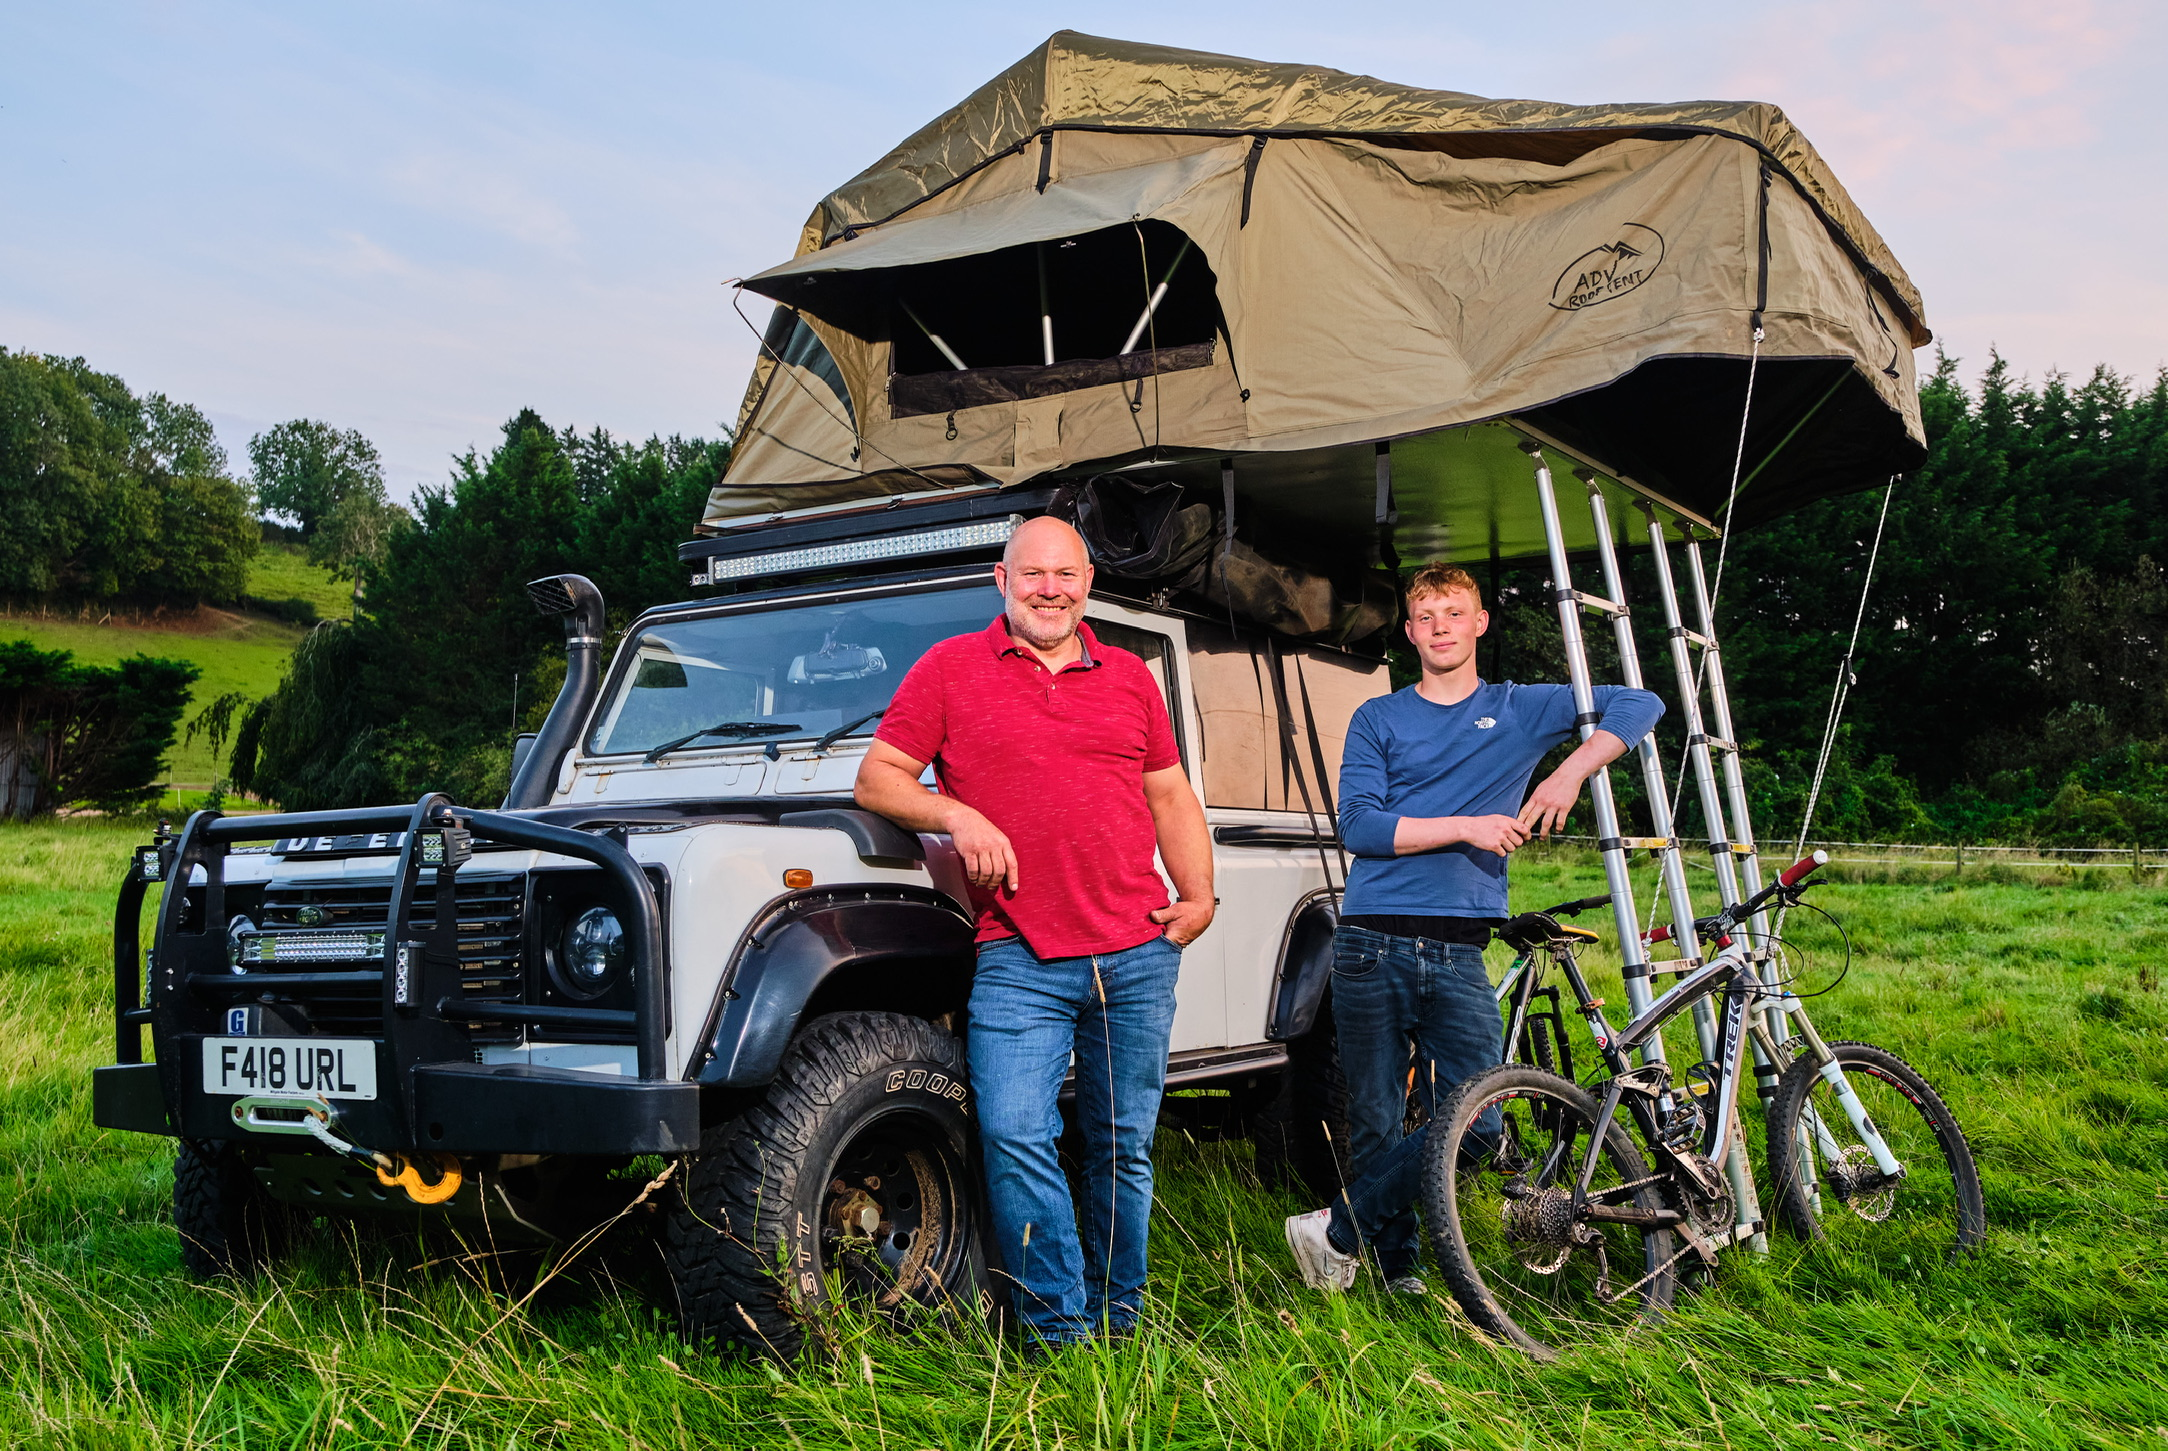 Tom Parkes owner of ADV Roof Tent